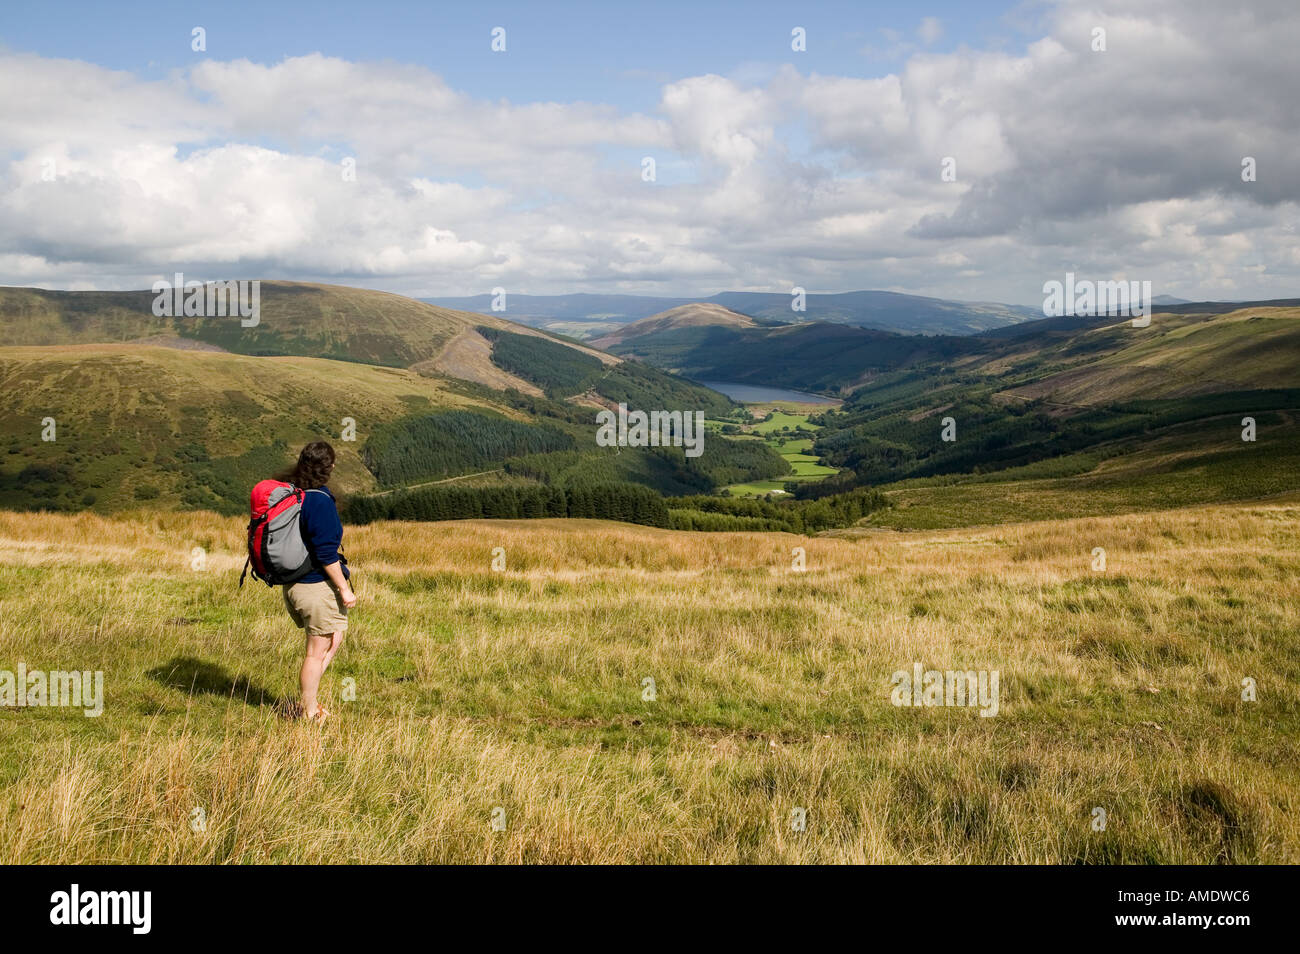 Female hiker walking on Pant y Creigiau looking over Glyn Collwn and Talybont reservoir Brecon beacons Wales UK - Stock Image